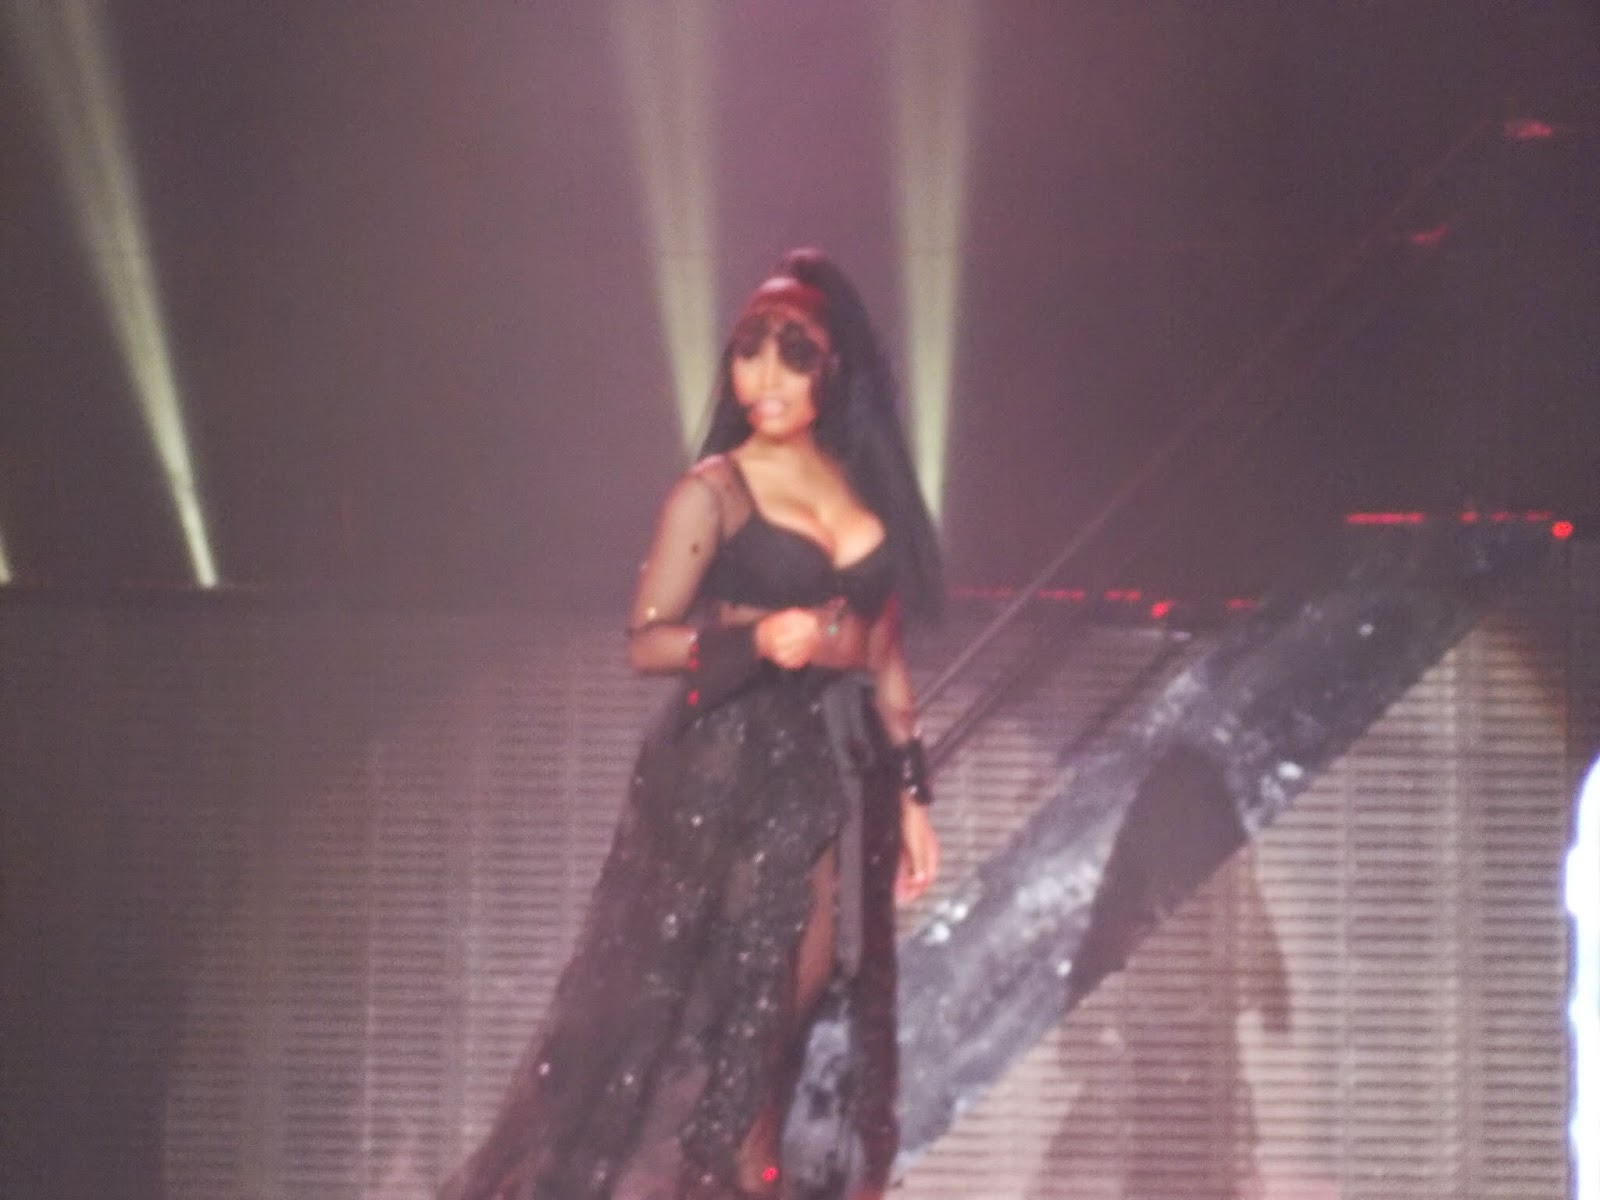 nicki minaj concert belfast april 2015 the pink print tour